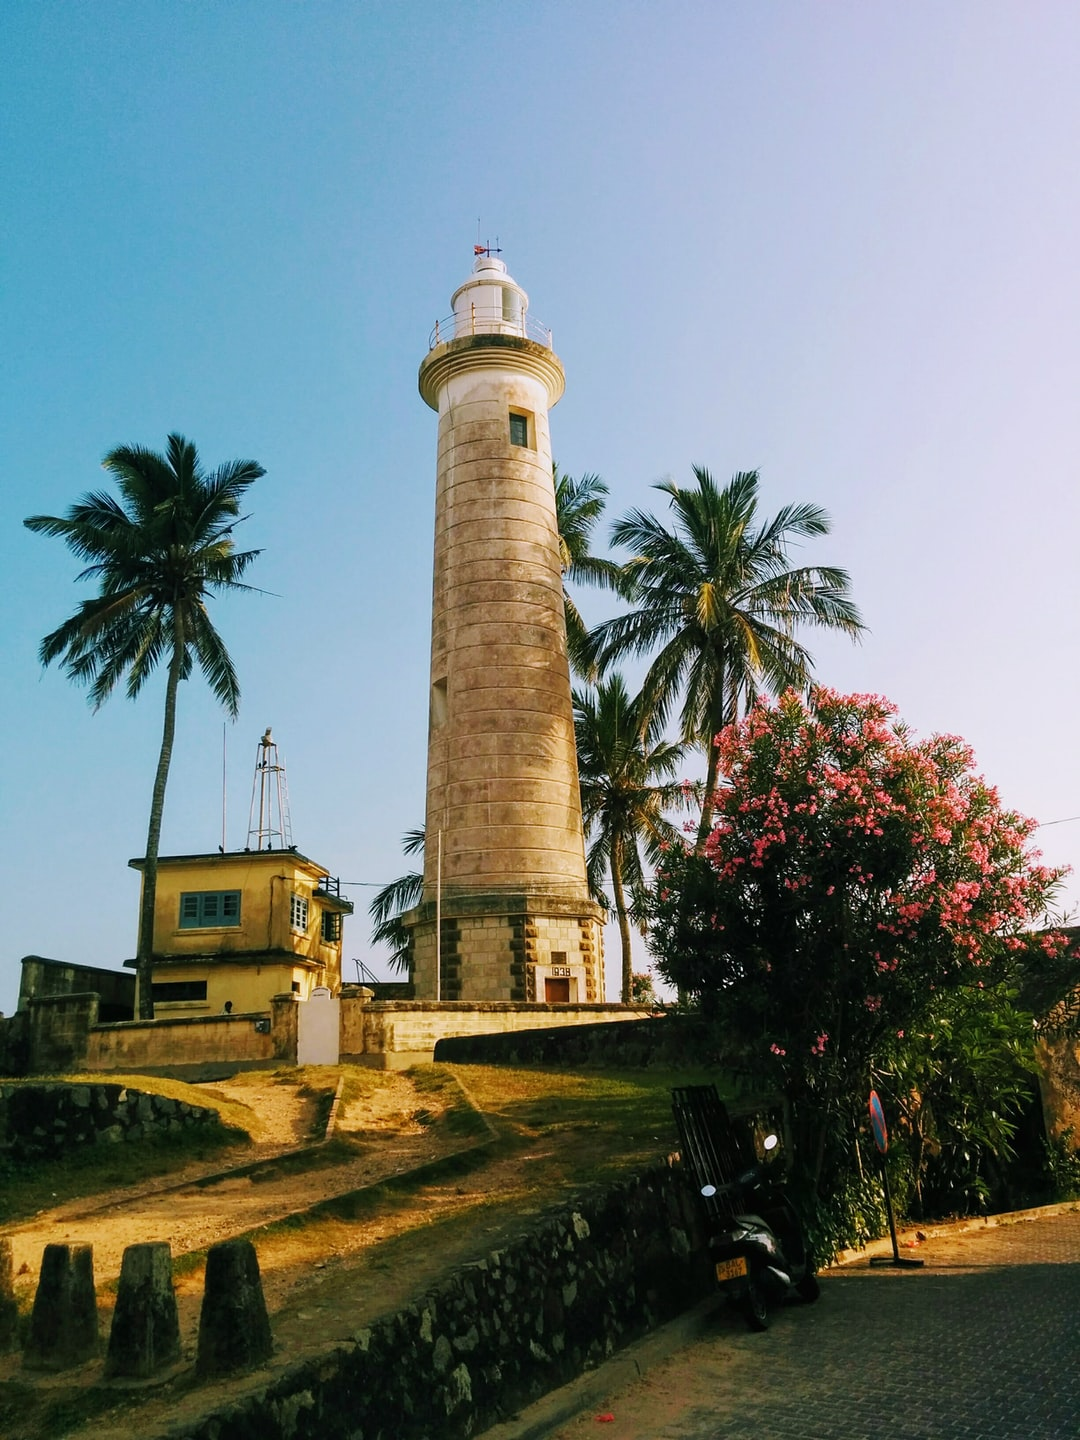 The light tower of Galle, built by the Dutch during the colonial age, in Mirissa, Sri Lanka